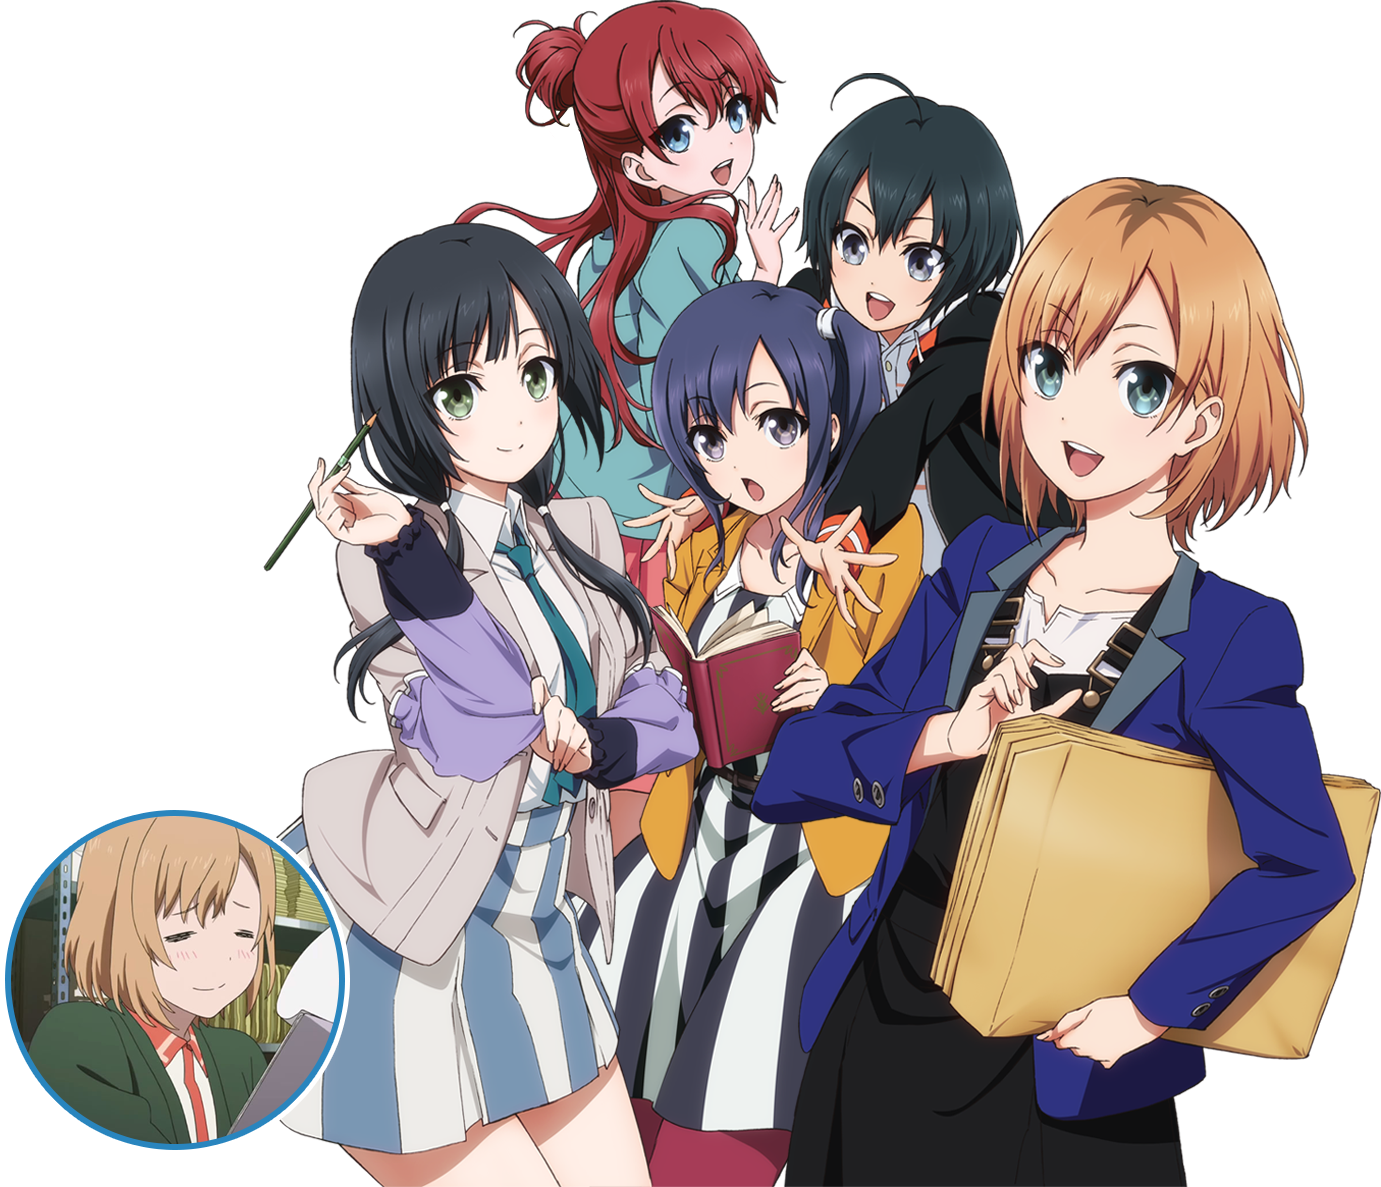 http://shirobako-anime.com/images/t_c06.png